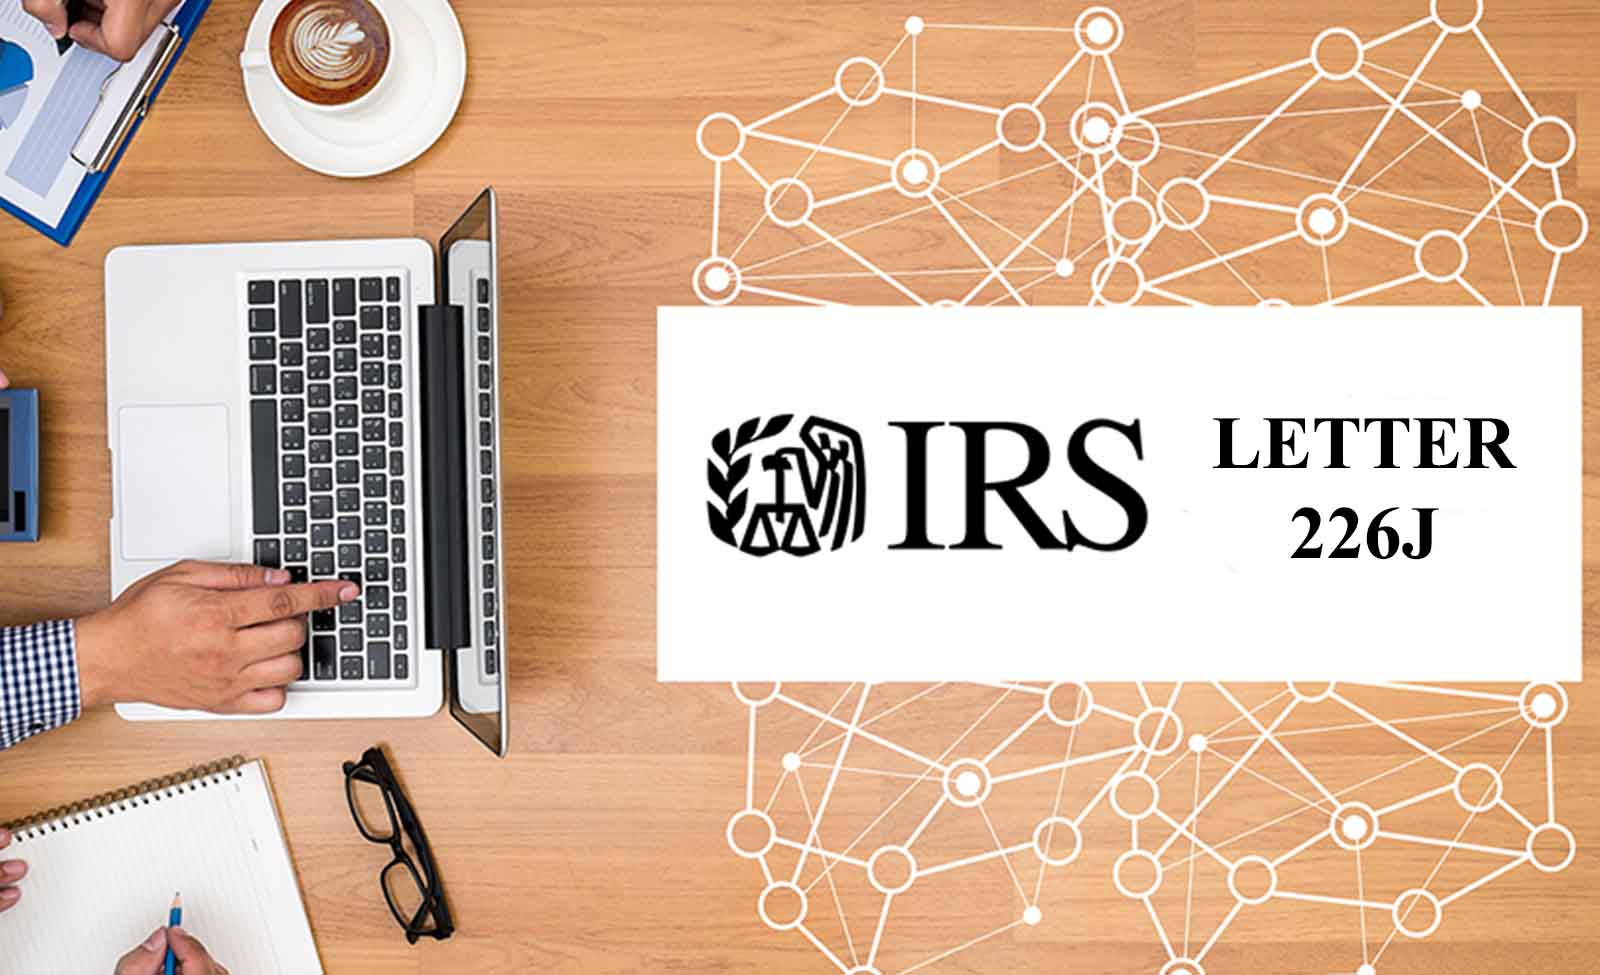 How to Respond to IRS Letter 226J